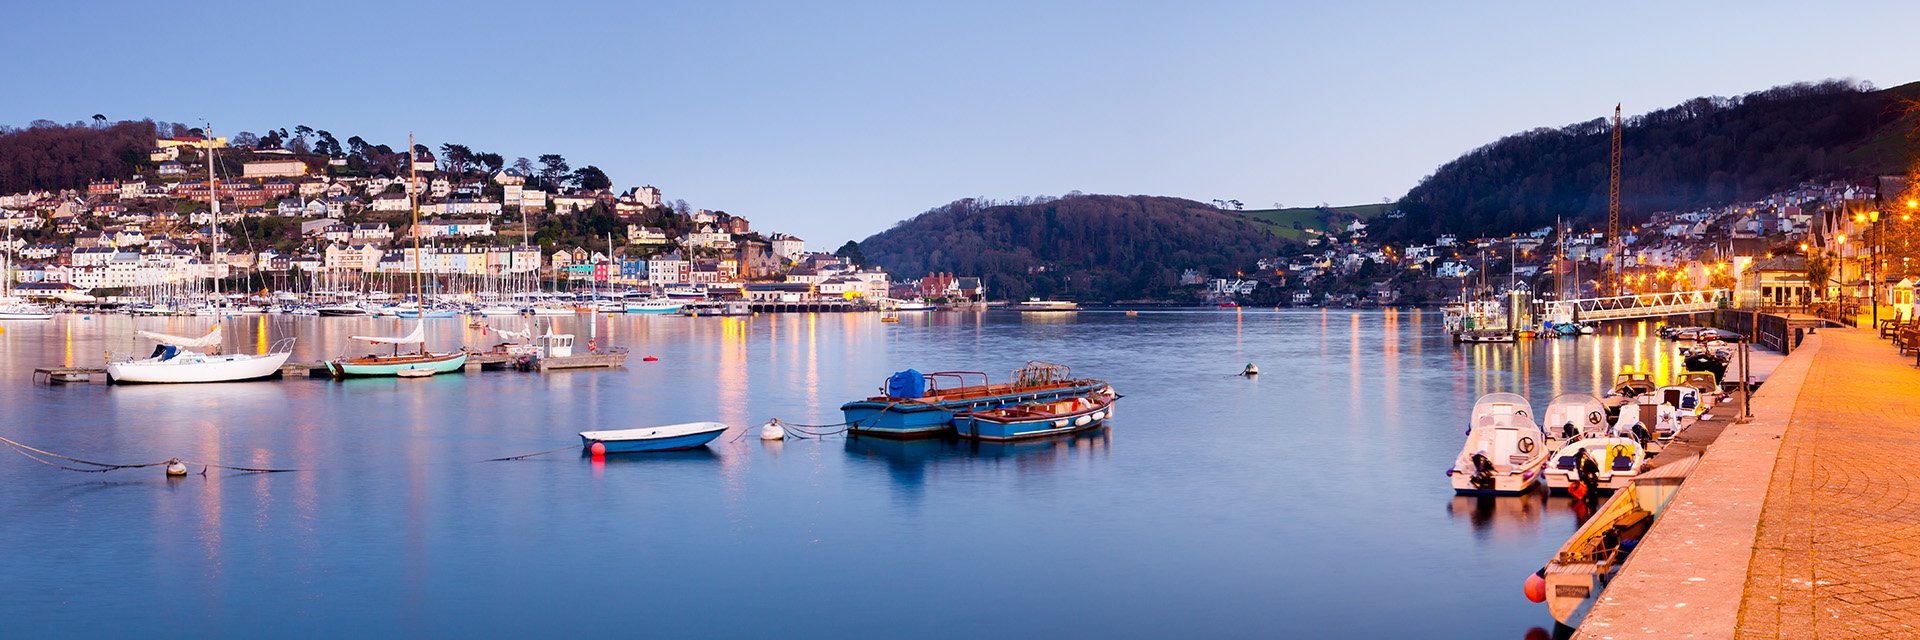 Quayside at Dartmouth - Latest News